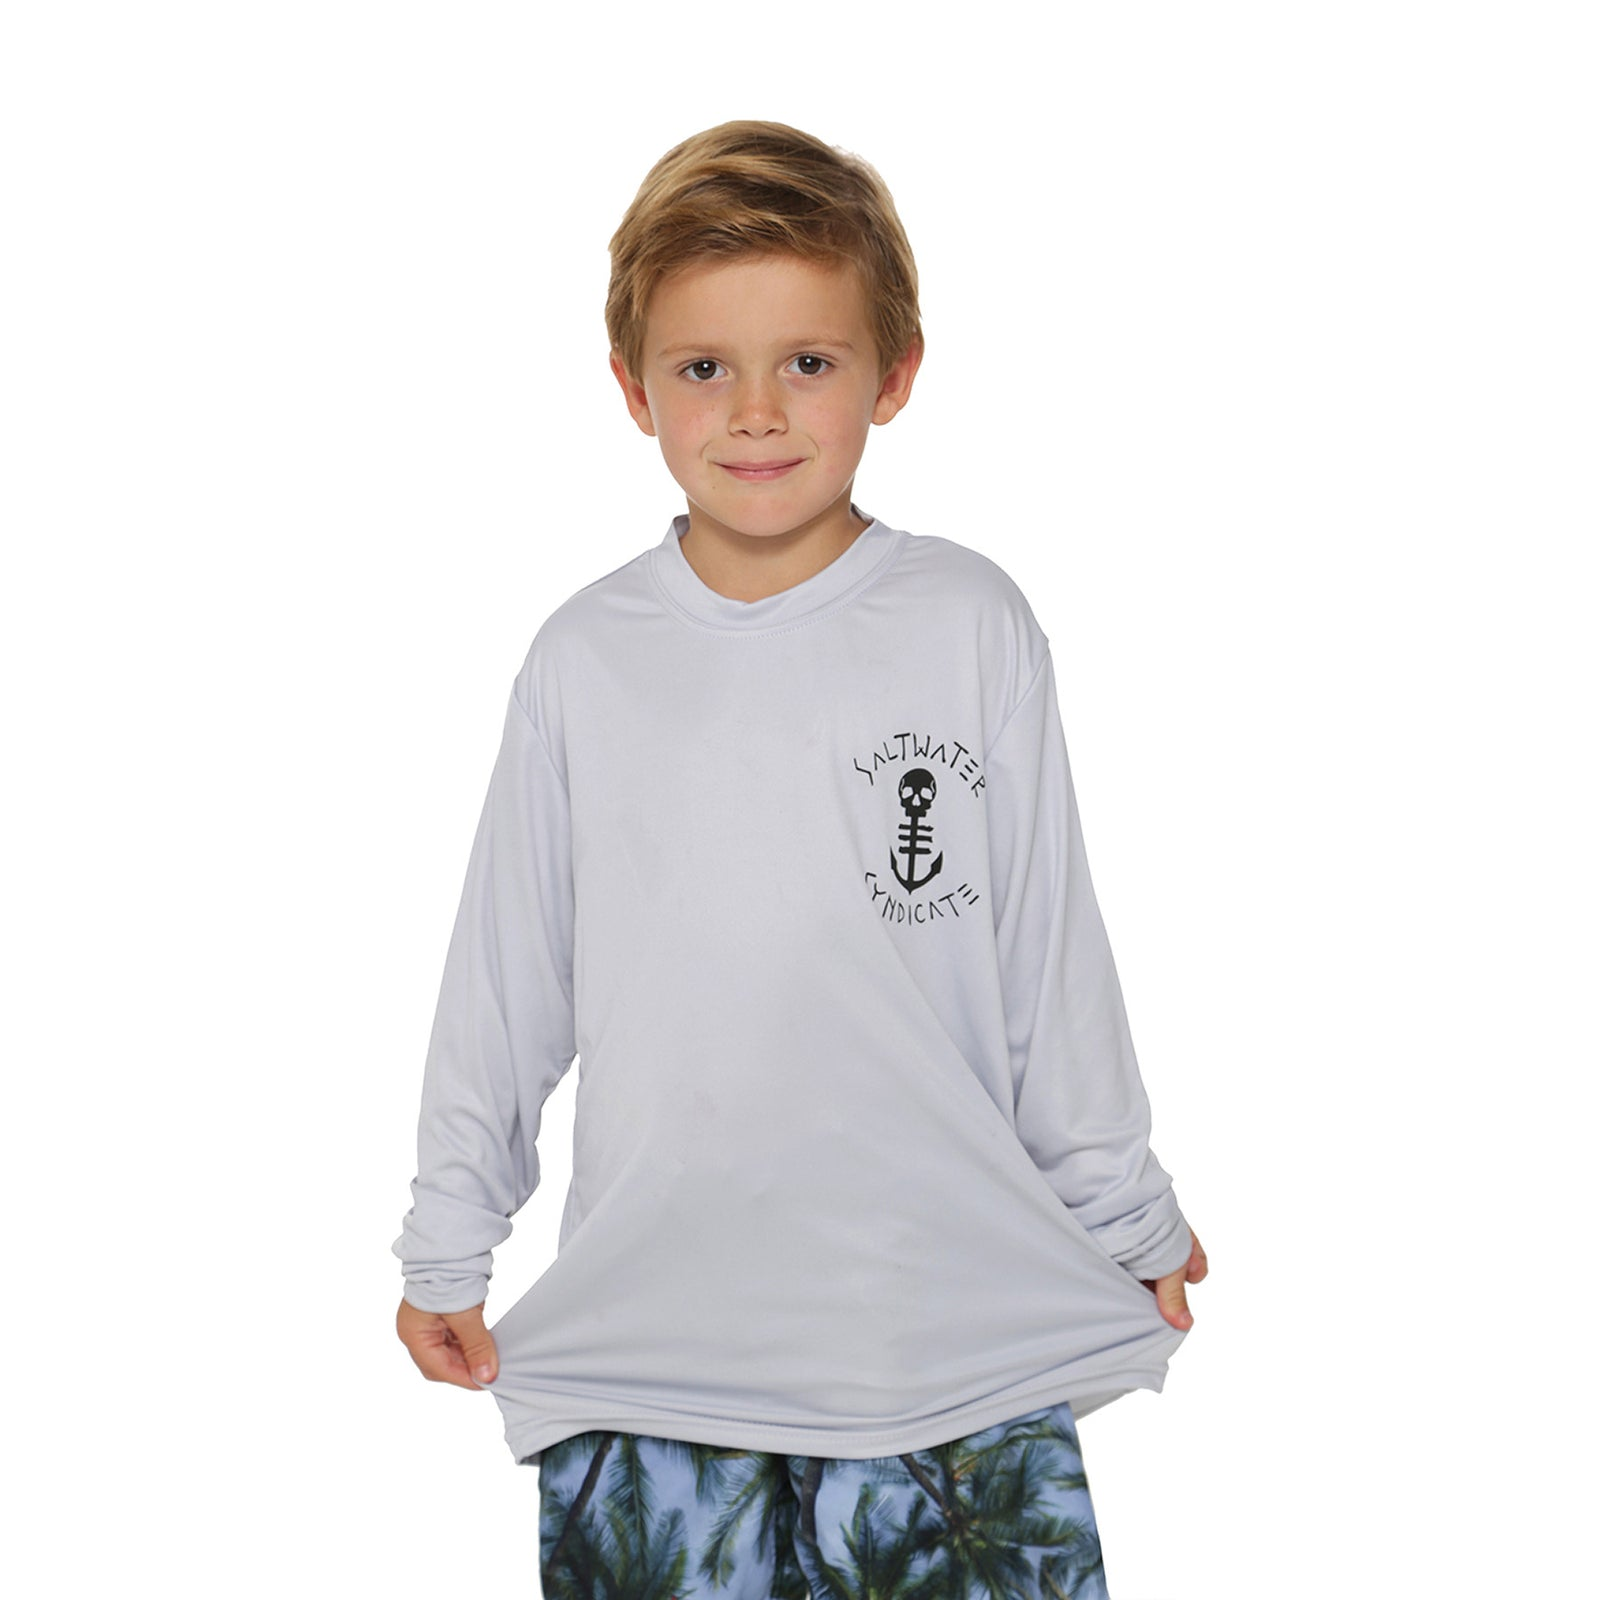 Youth Performance UPF- Silver/Black - Saltwater Syndicate -  - 2